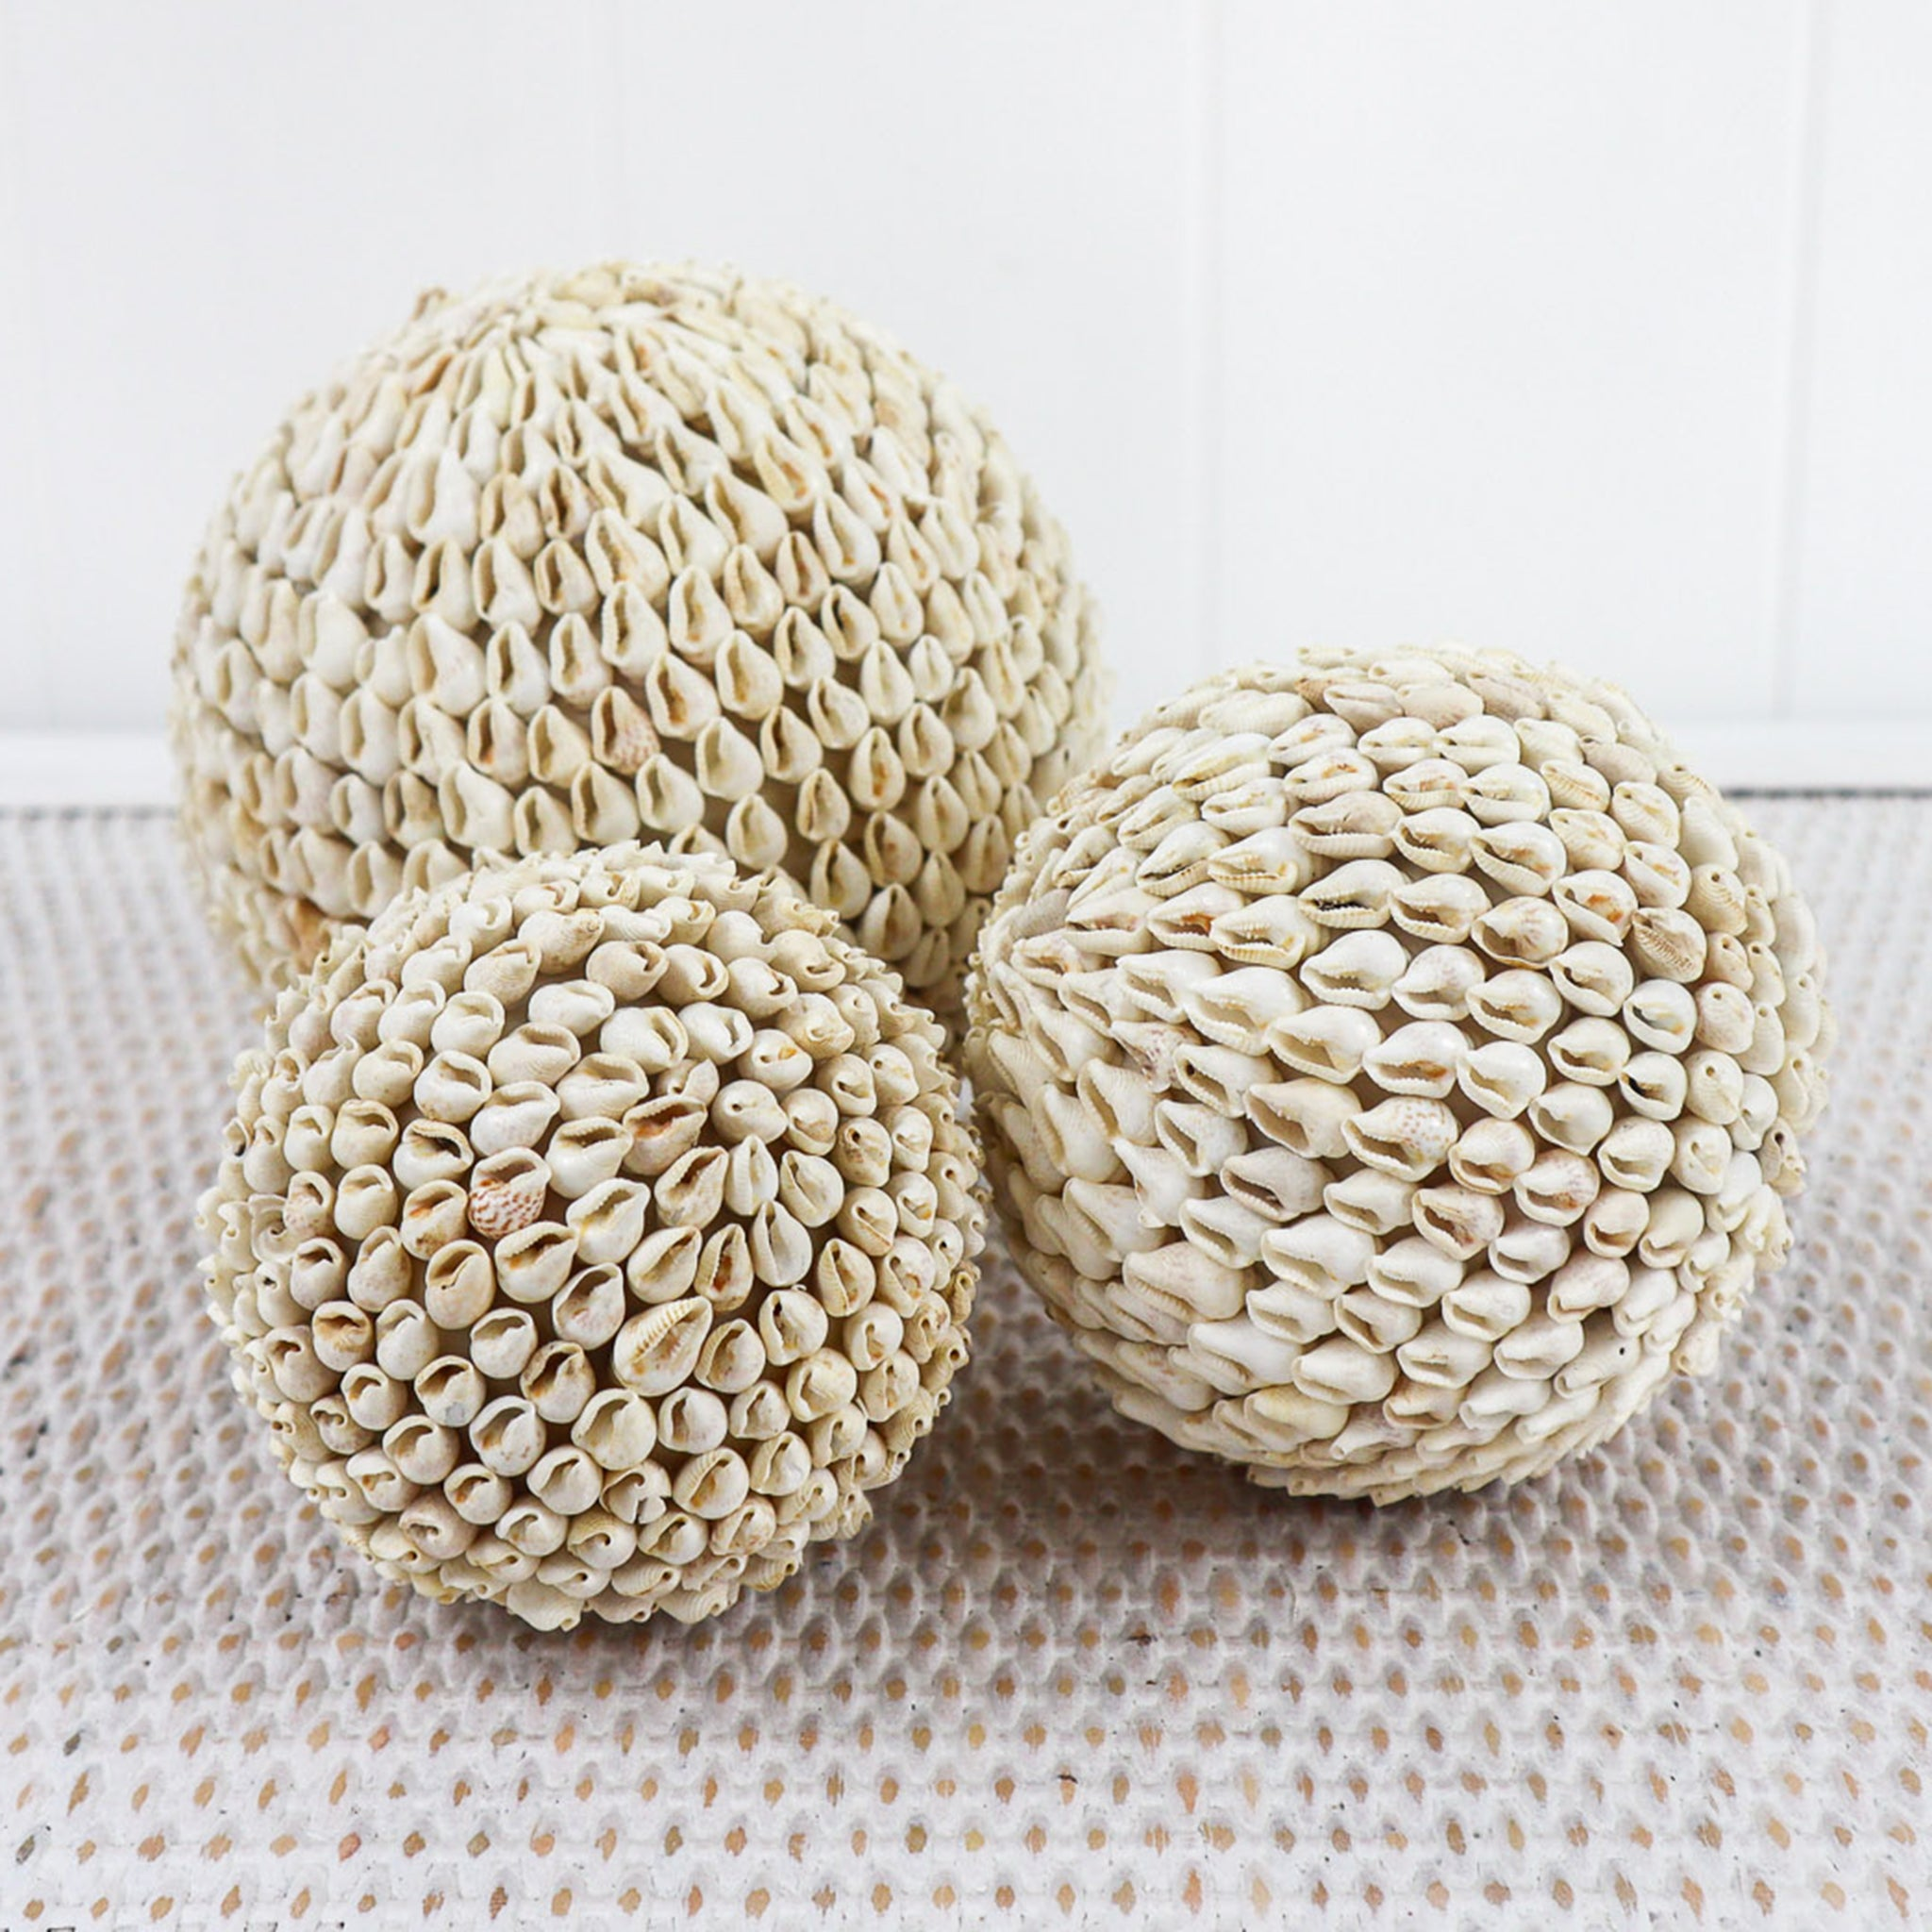 There is so much painstaking work that has gone into making these shell balls. Hundreds of tiny shells making up one big ball.   They always look so elegant when several are placed in a beautiful glass vase or in a rustic rattan bowl.  These also make interesting gifts.